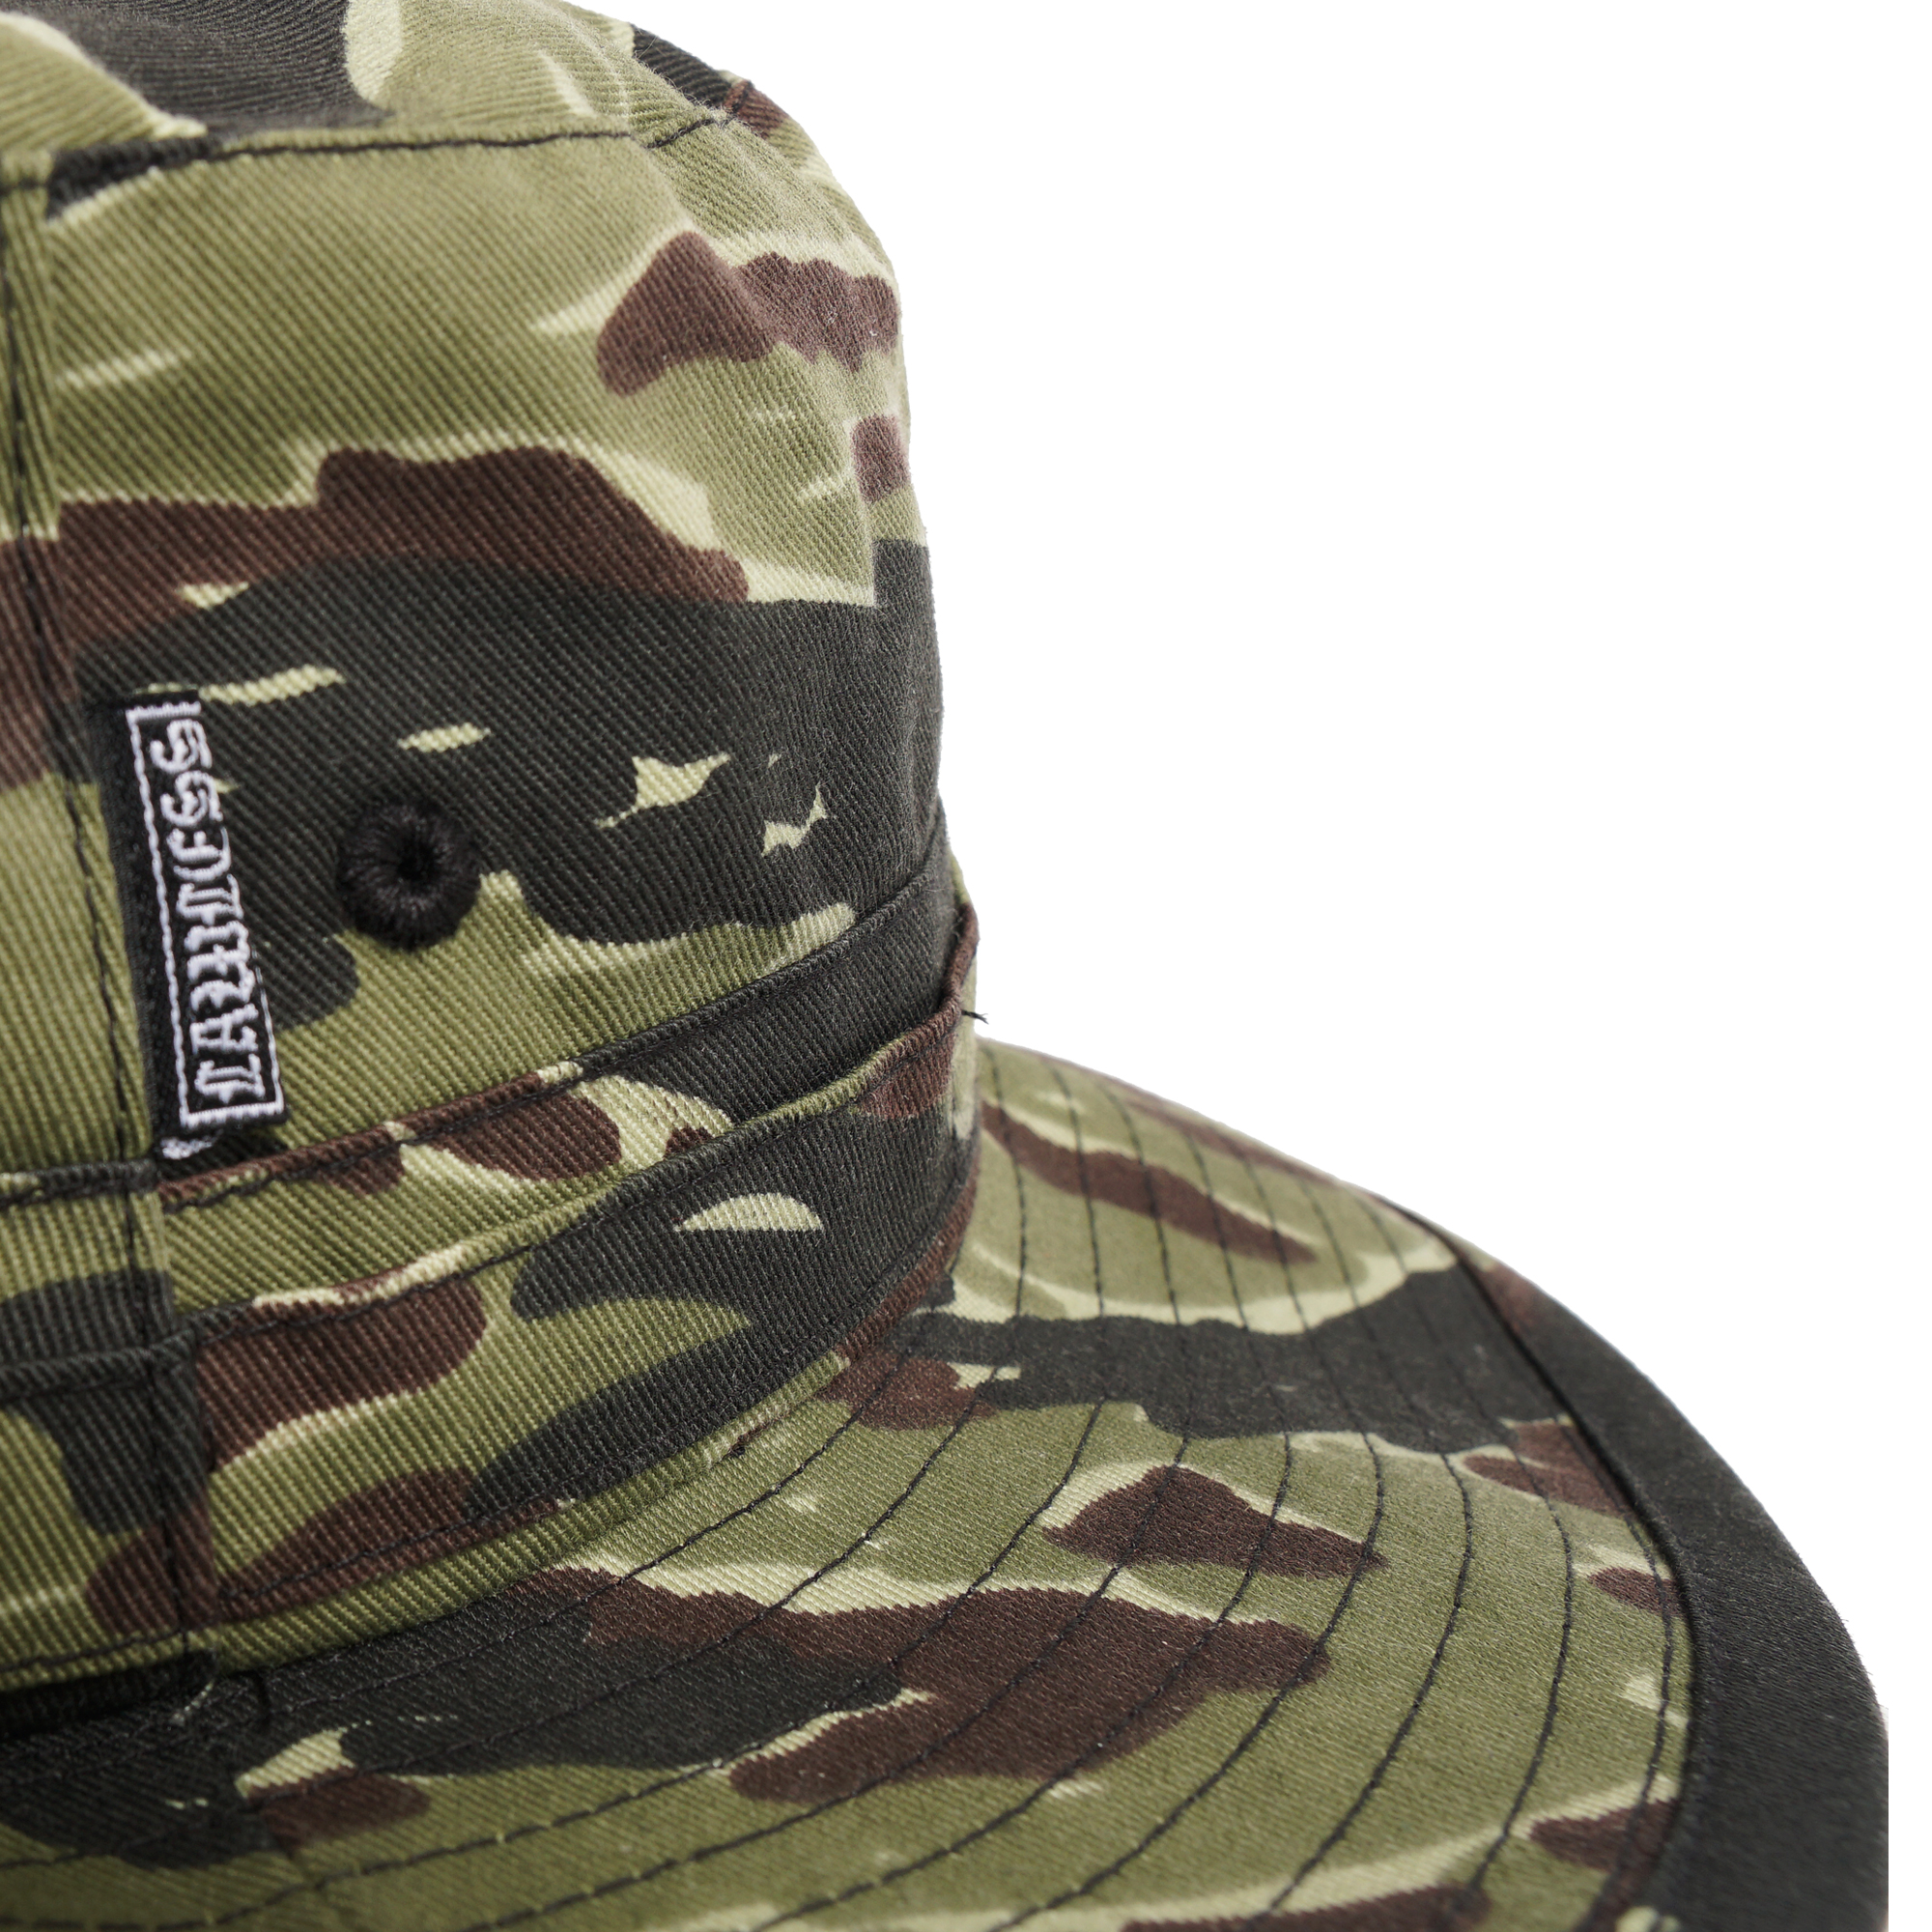 lawless-bucket-hat-army-detail2